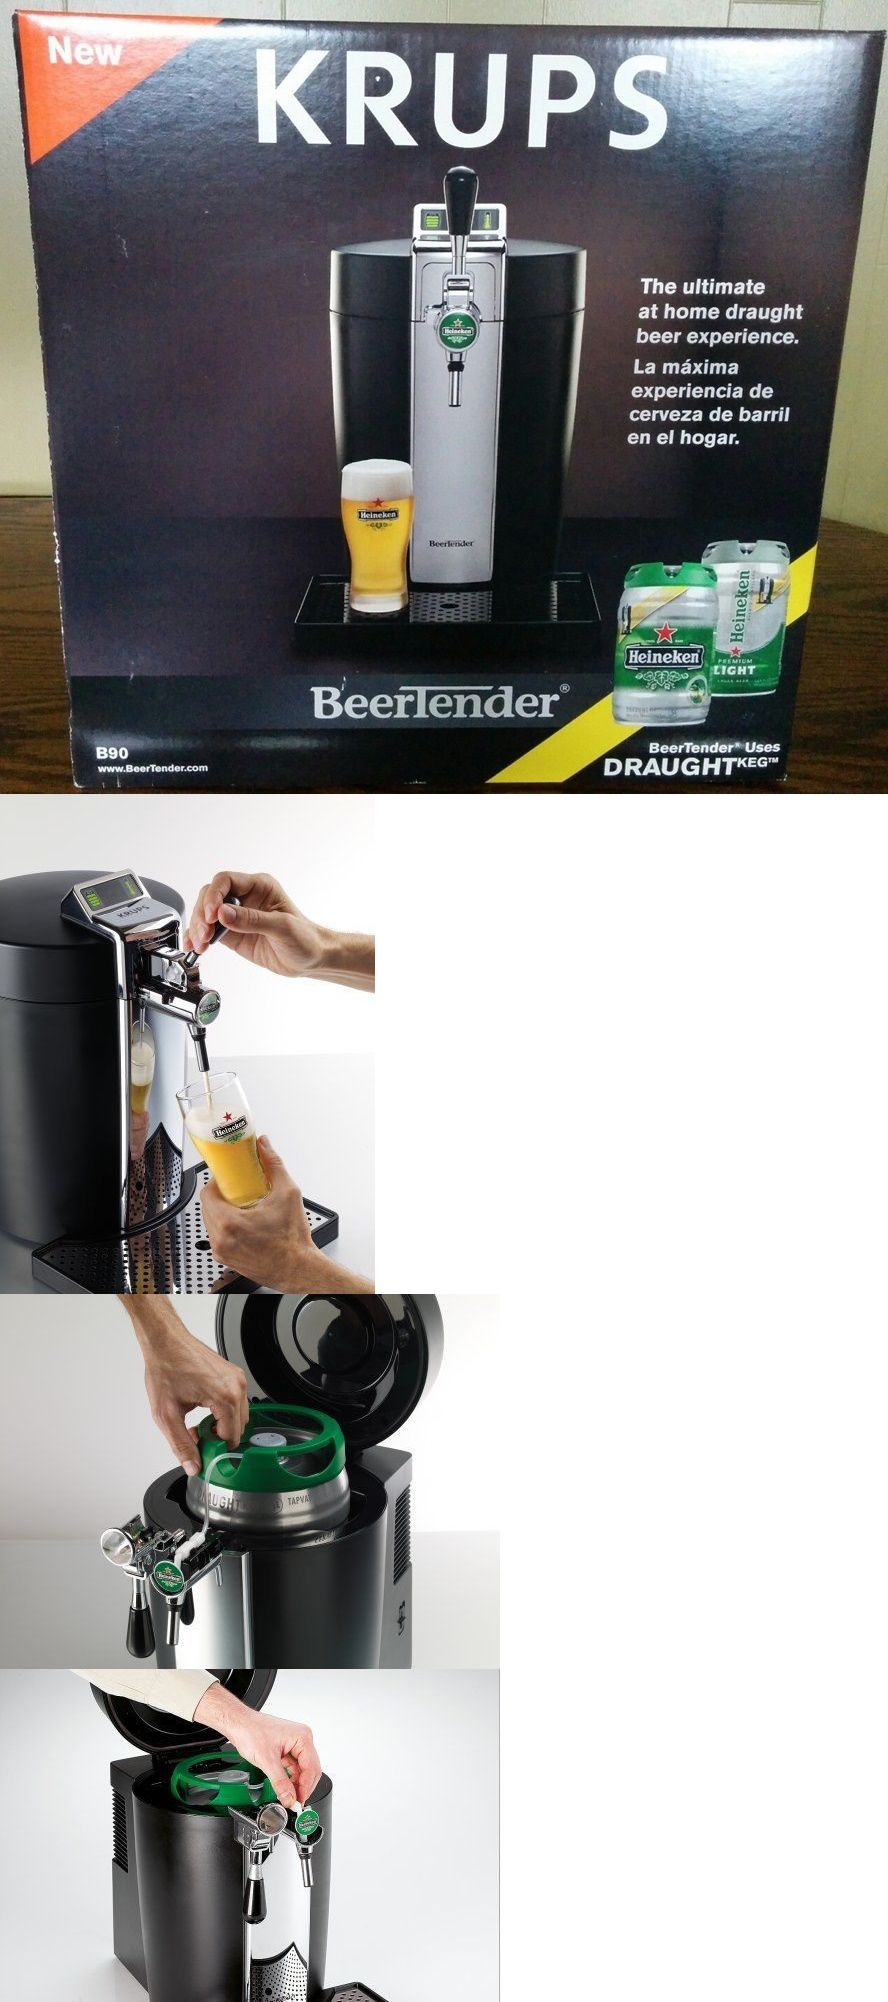 Beer tap systems for home - Home Pubs And Bars 115713 Krups B90 Beertender Home Beer Tap System Heineken W 10